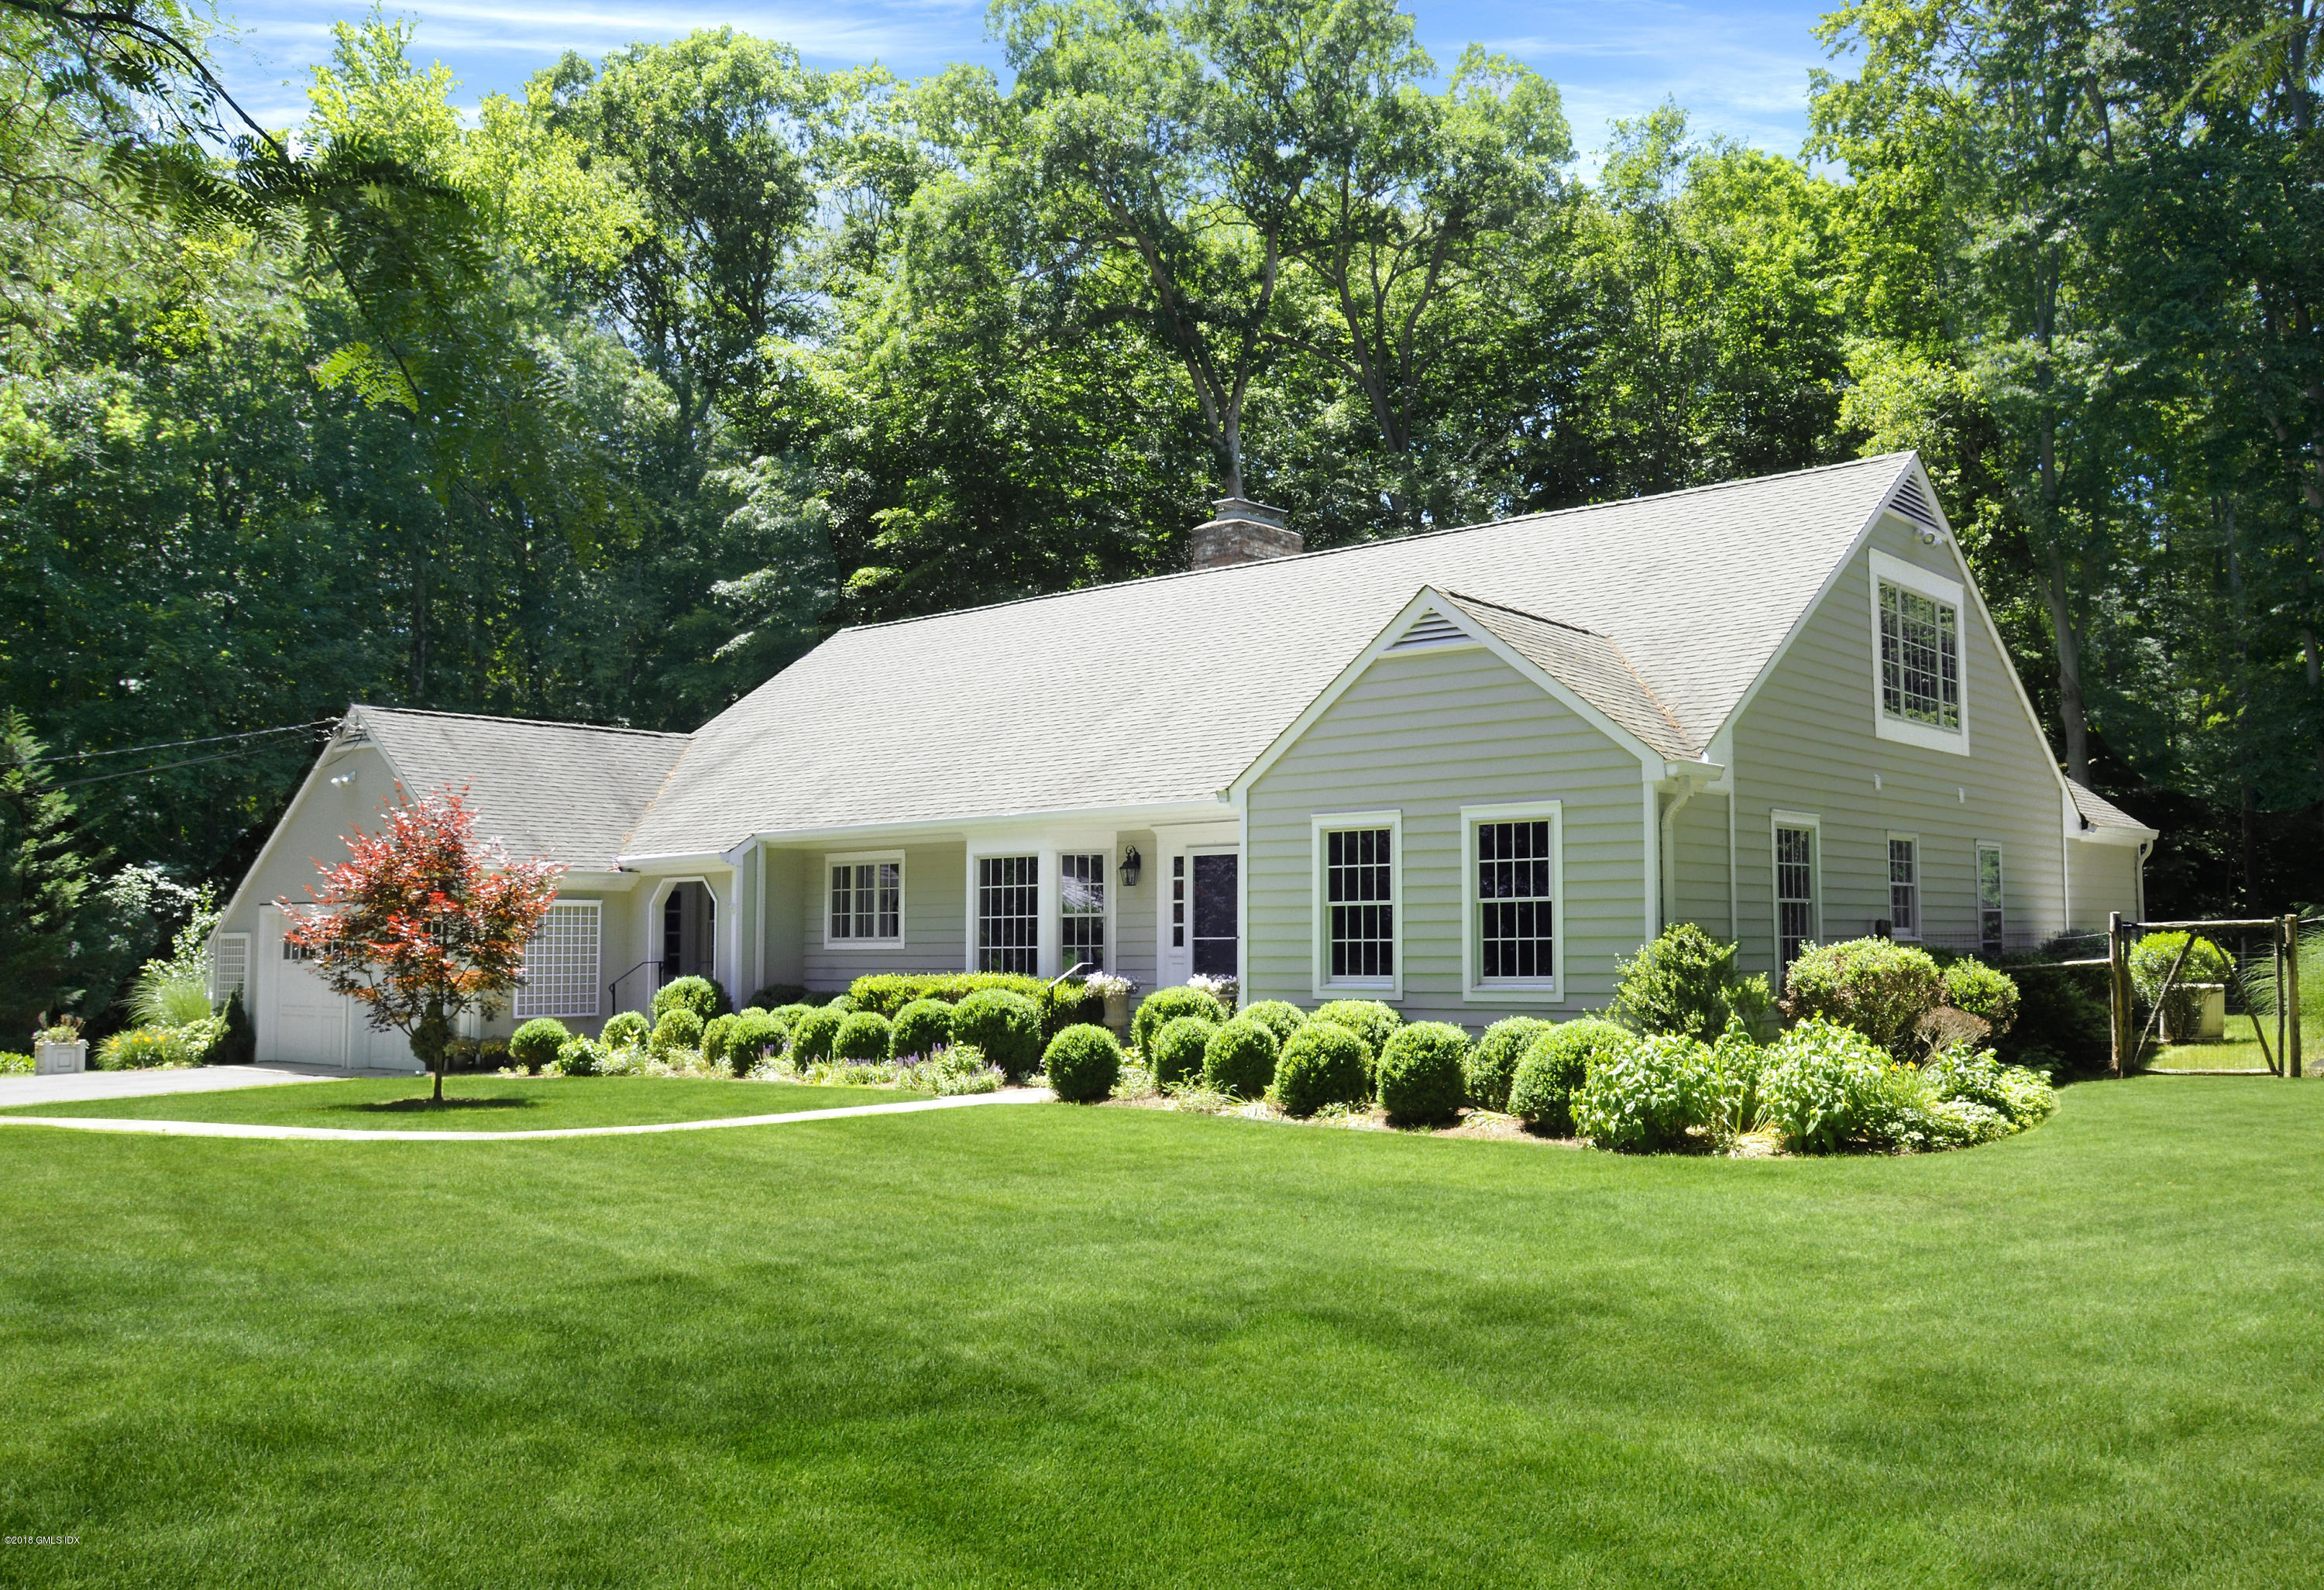 7 Wyngate Road,Greenwich,Connecticut 06830,4 Bedrooms Bedrooms,3 BathroomsBathrooms,Single family,Wyngate,105826